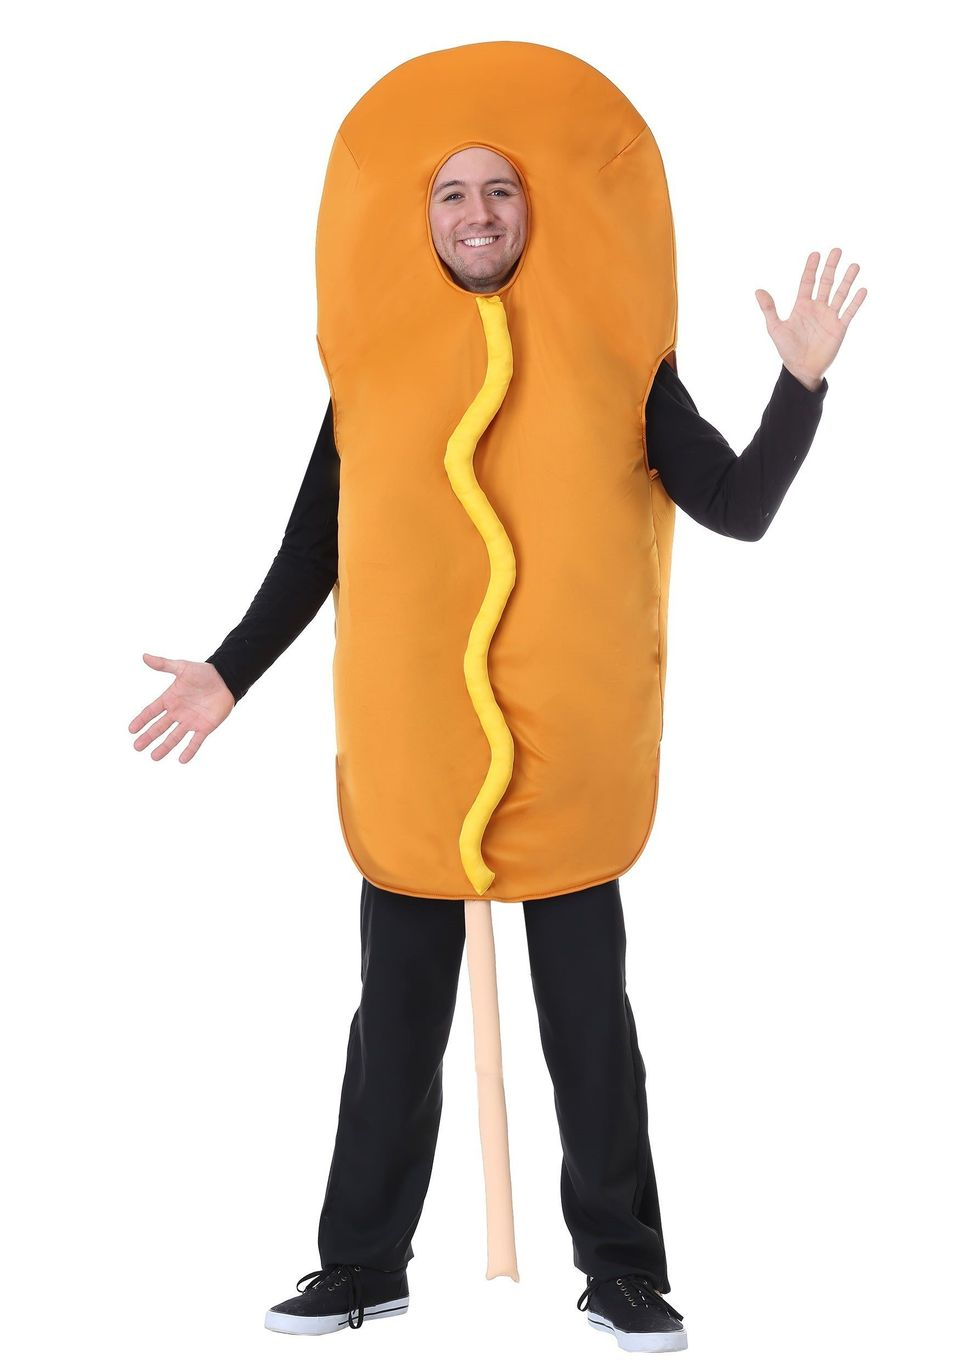 "For some people, this <a href=""https://www.halloweencostumes.com/adult-corndog-costume.html"" target=""_blank"">corn dog costume"